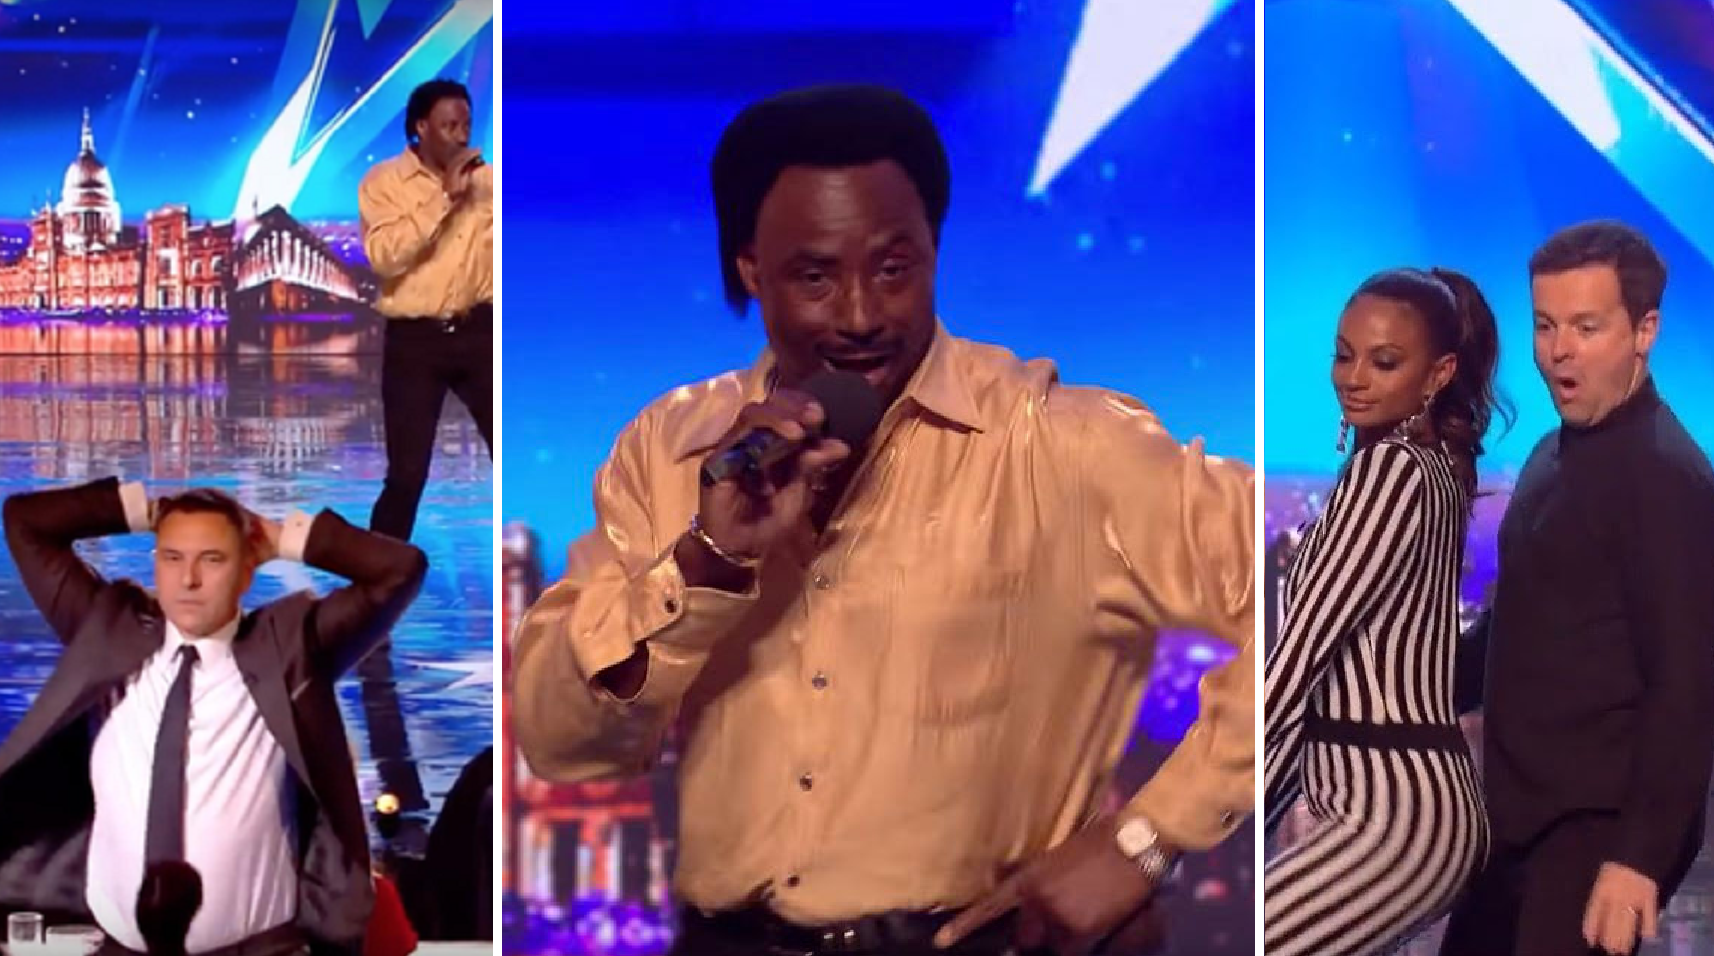 This Man's Incredible Audition-Performance Had The Entire Audience Dancing, Getting Him a 'Golden Buzzer'